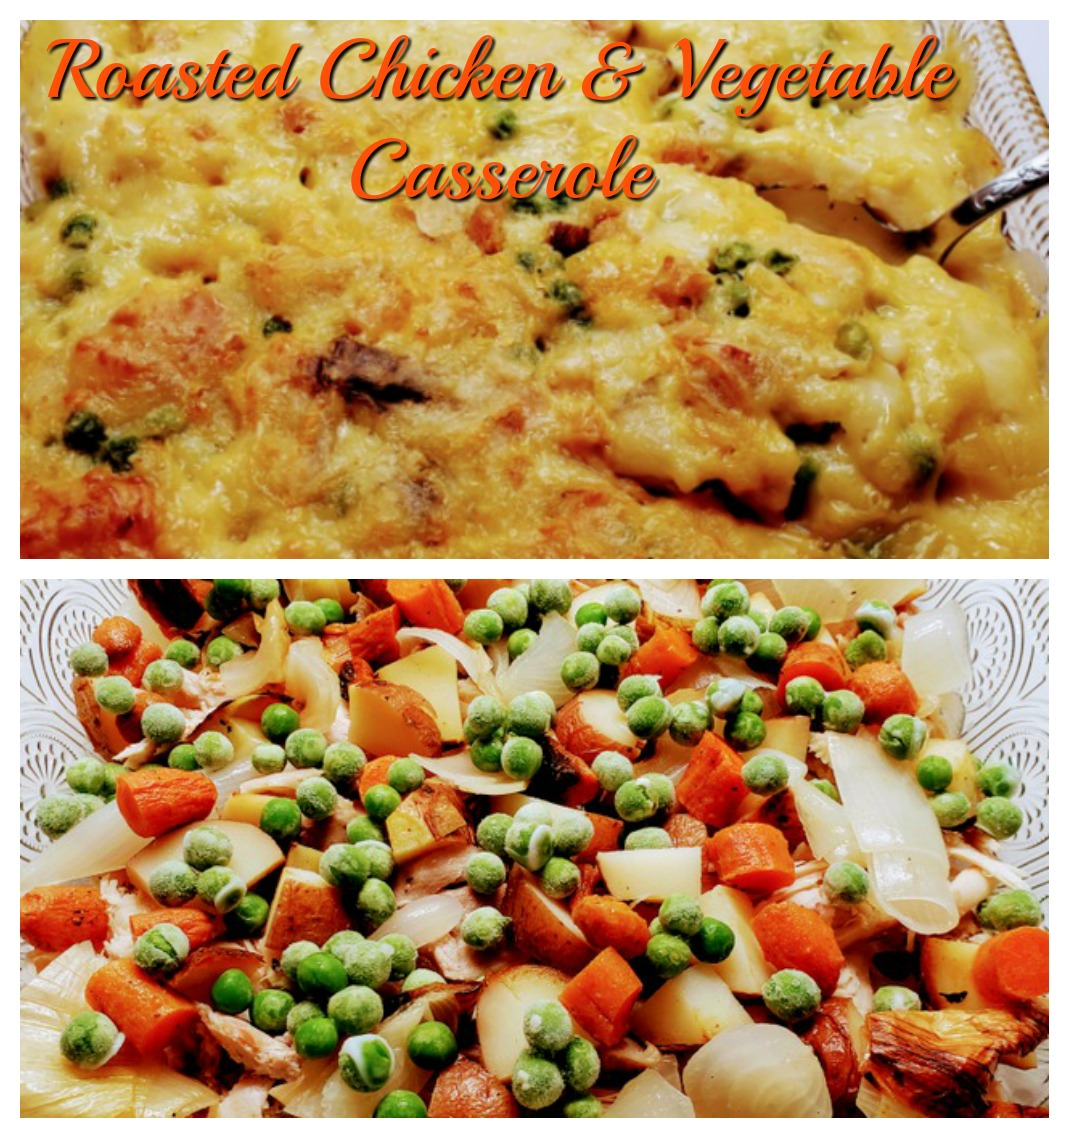 Roasted Chiken & Vegetable Casserole